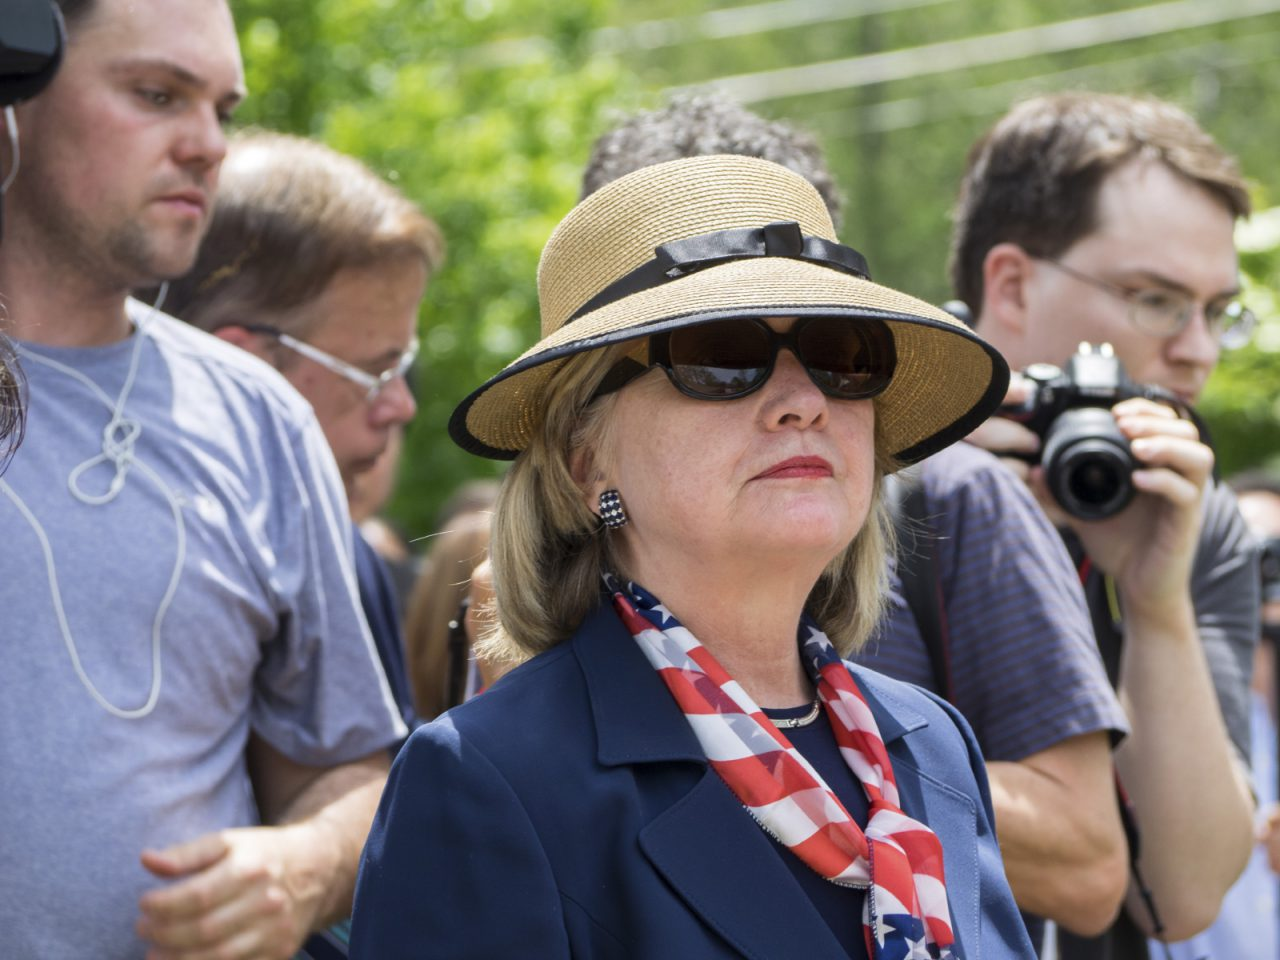 Crowdsourced Opinions on Hillary: Take Two